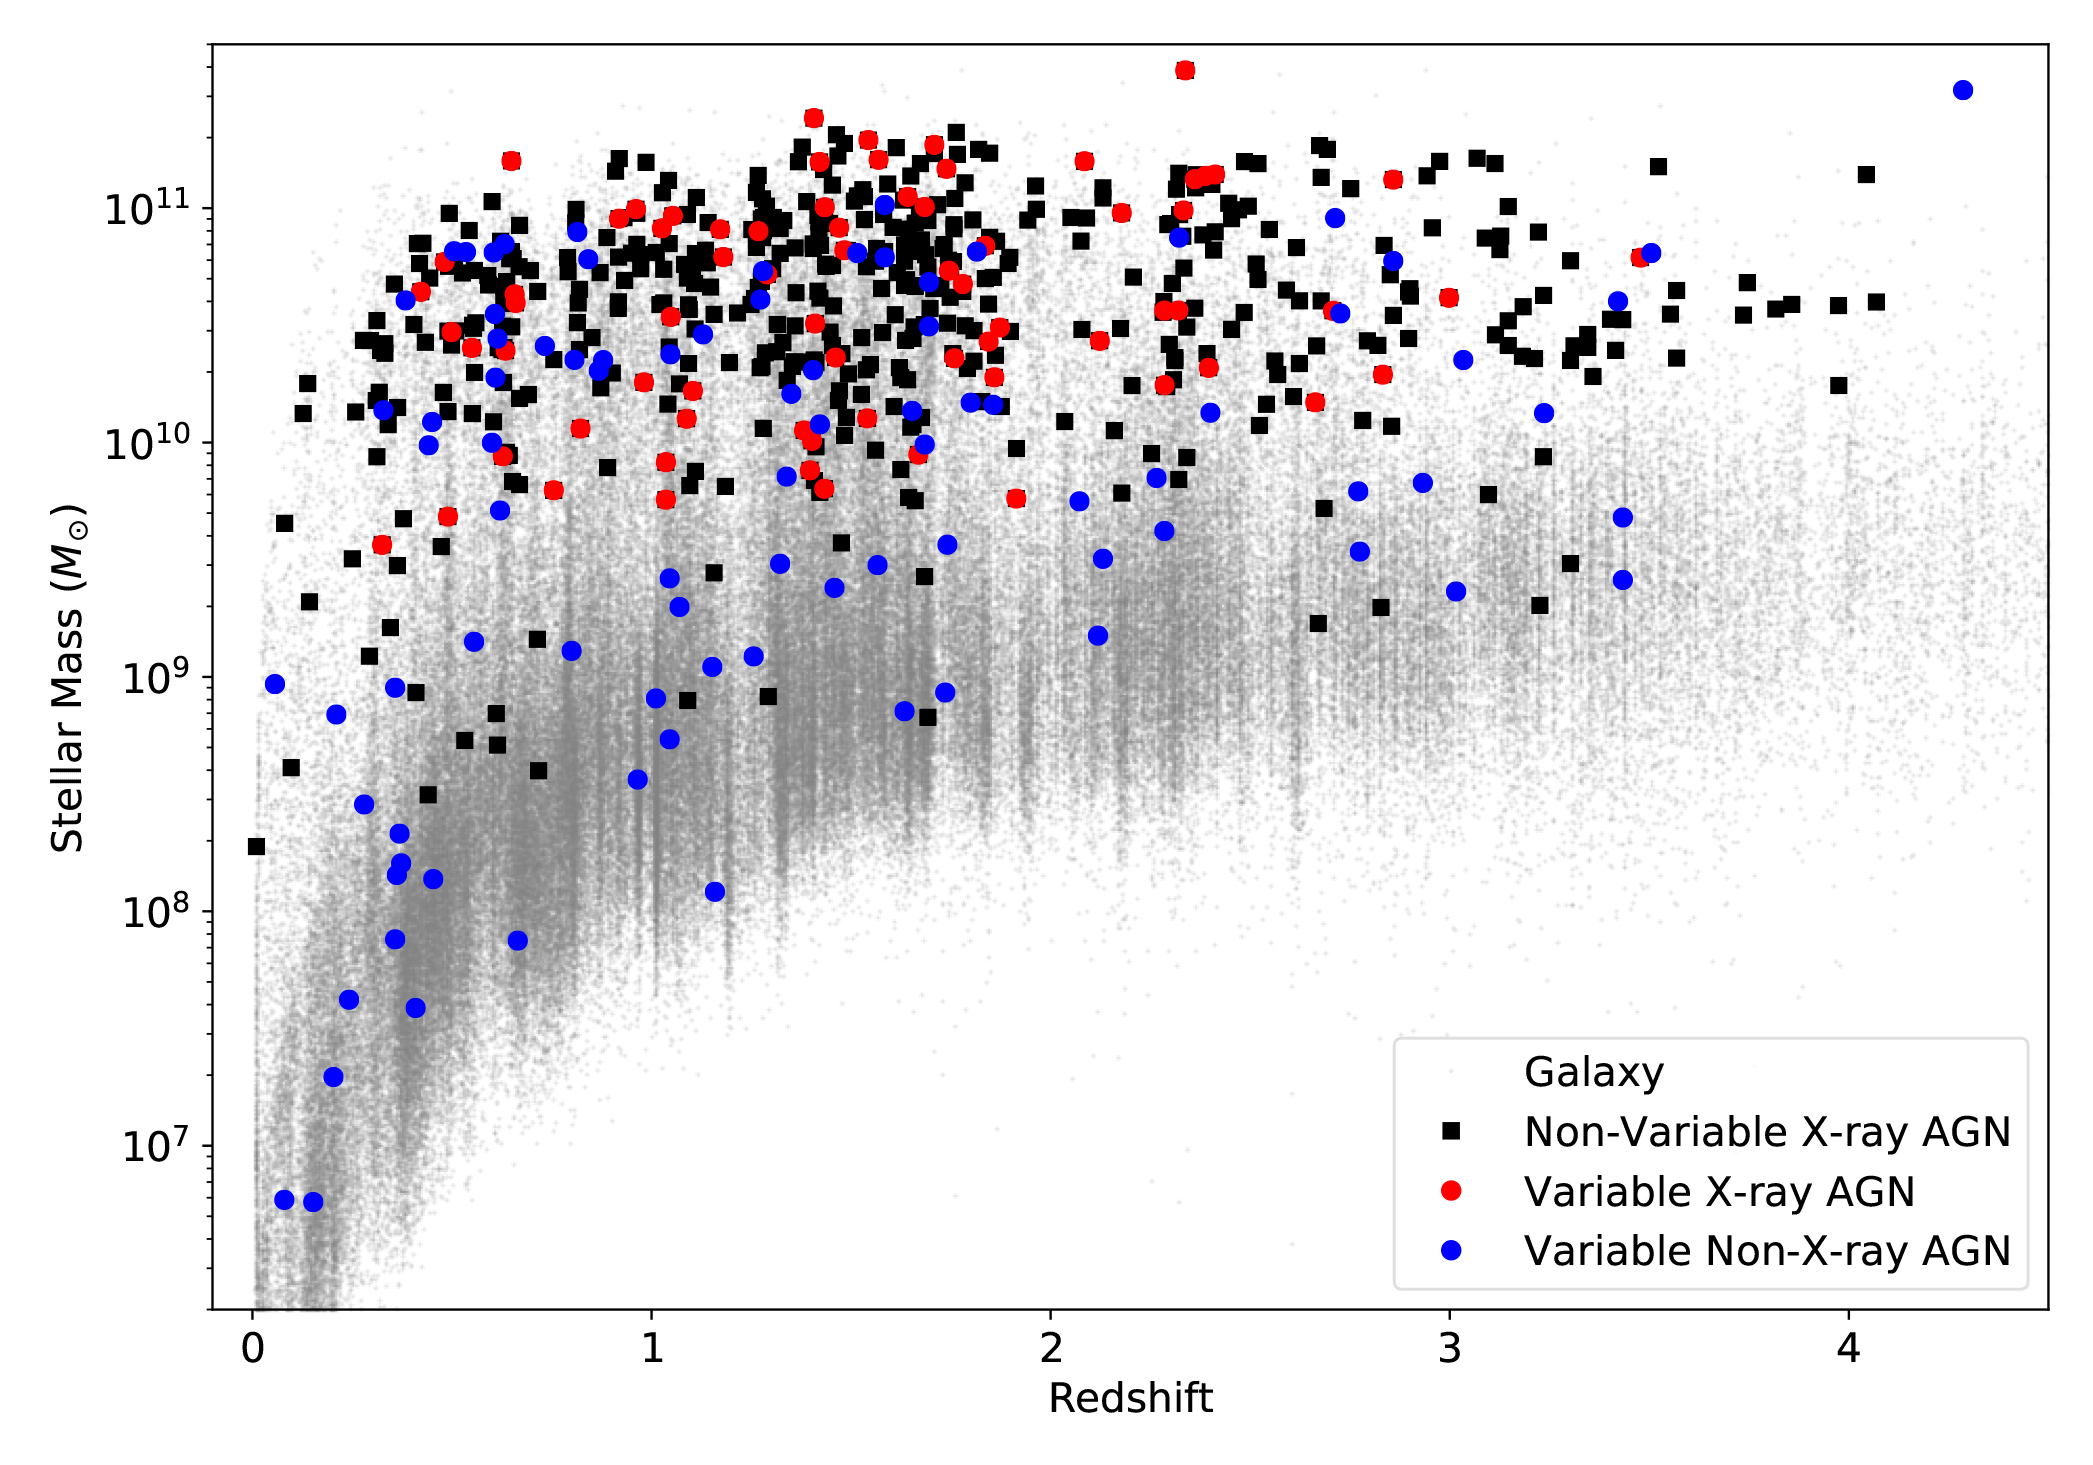 Figure showing the distribution of different types of AGN within the mass-redshift plane